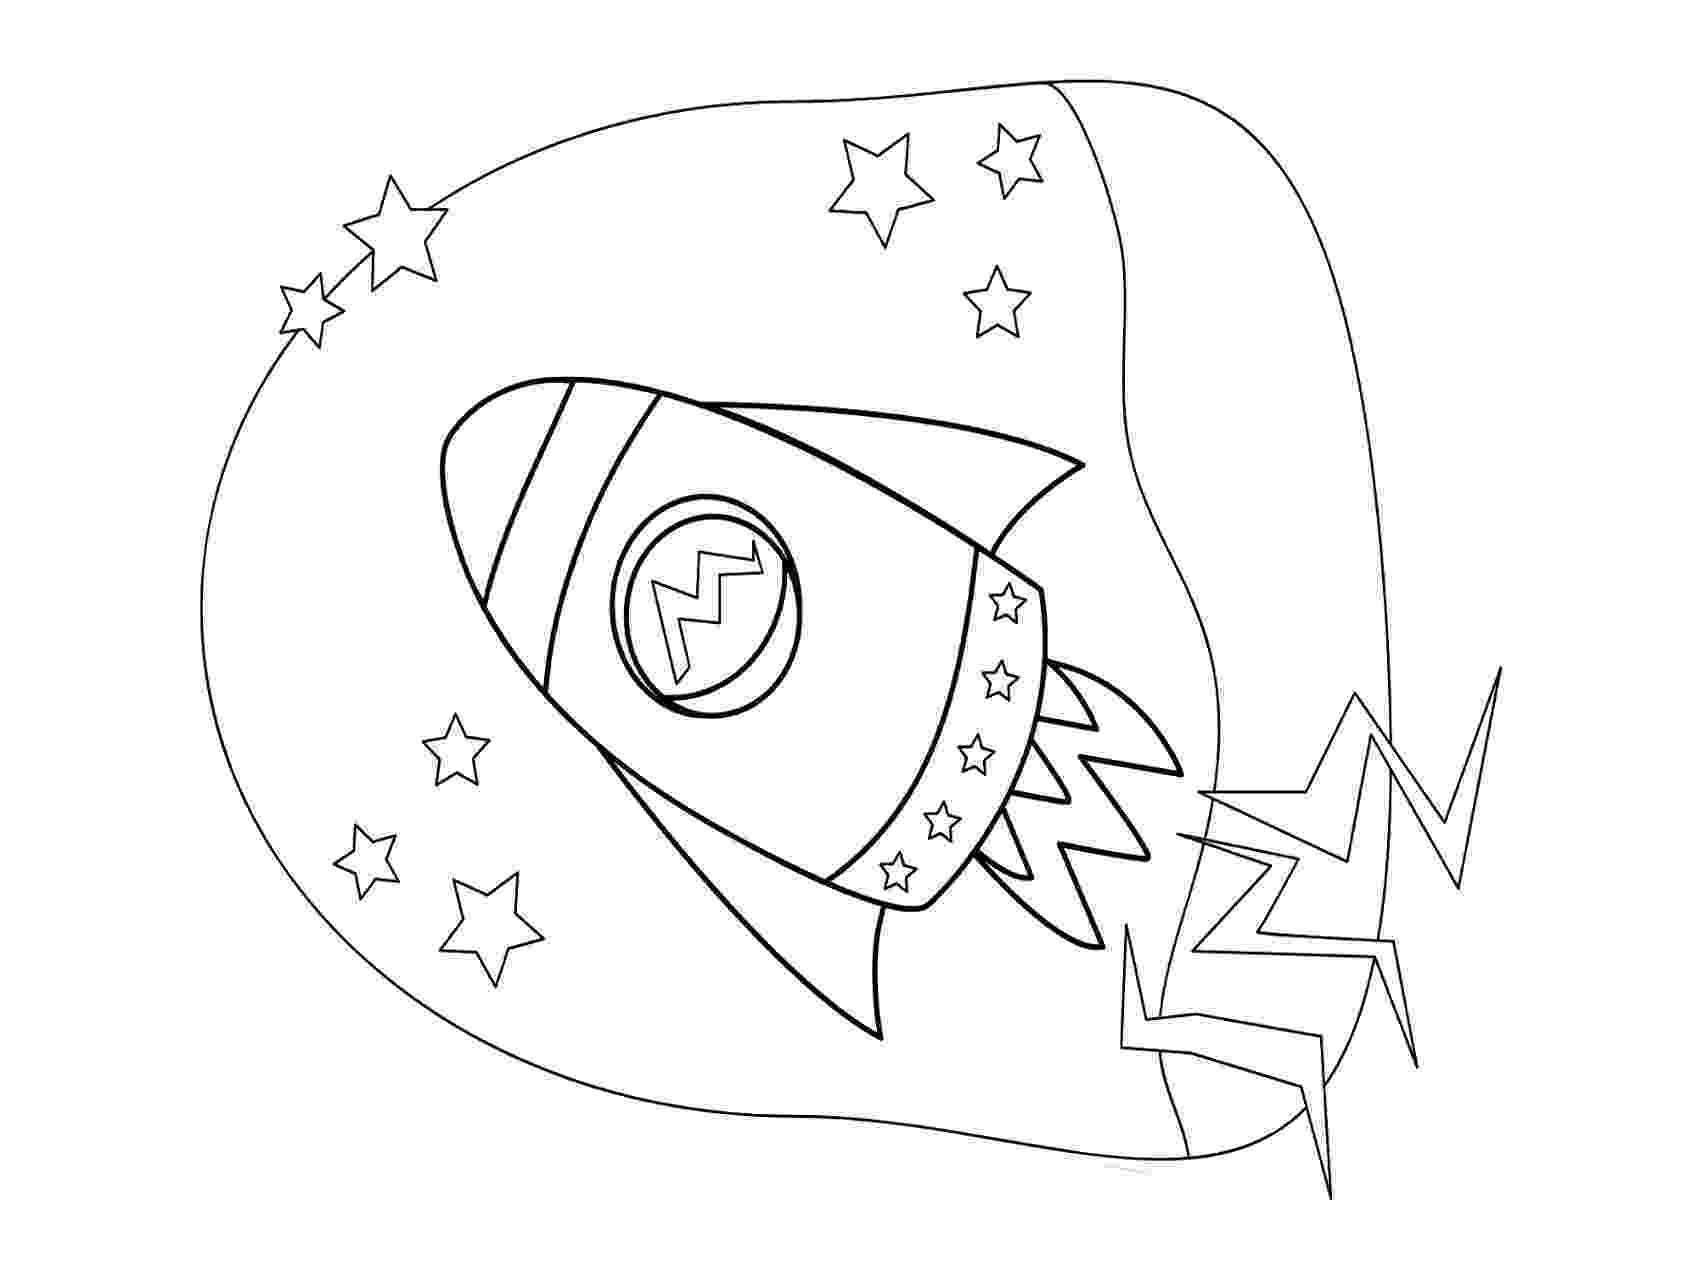 printable coloring pages rocket ship rocket ship pictures for kids clipartsco coloring printable rocket pages ship